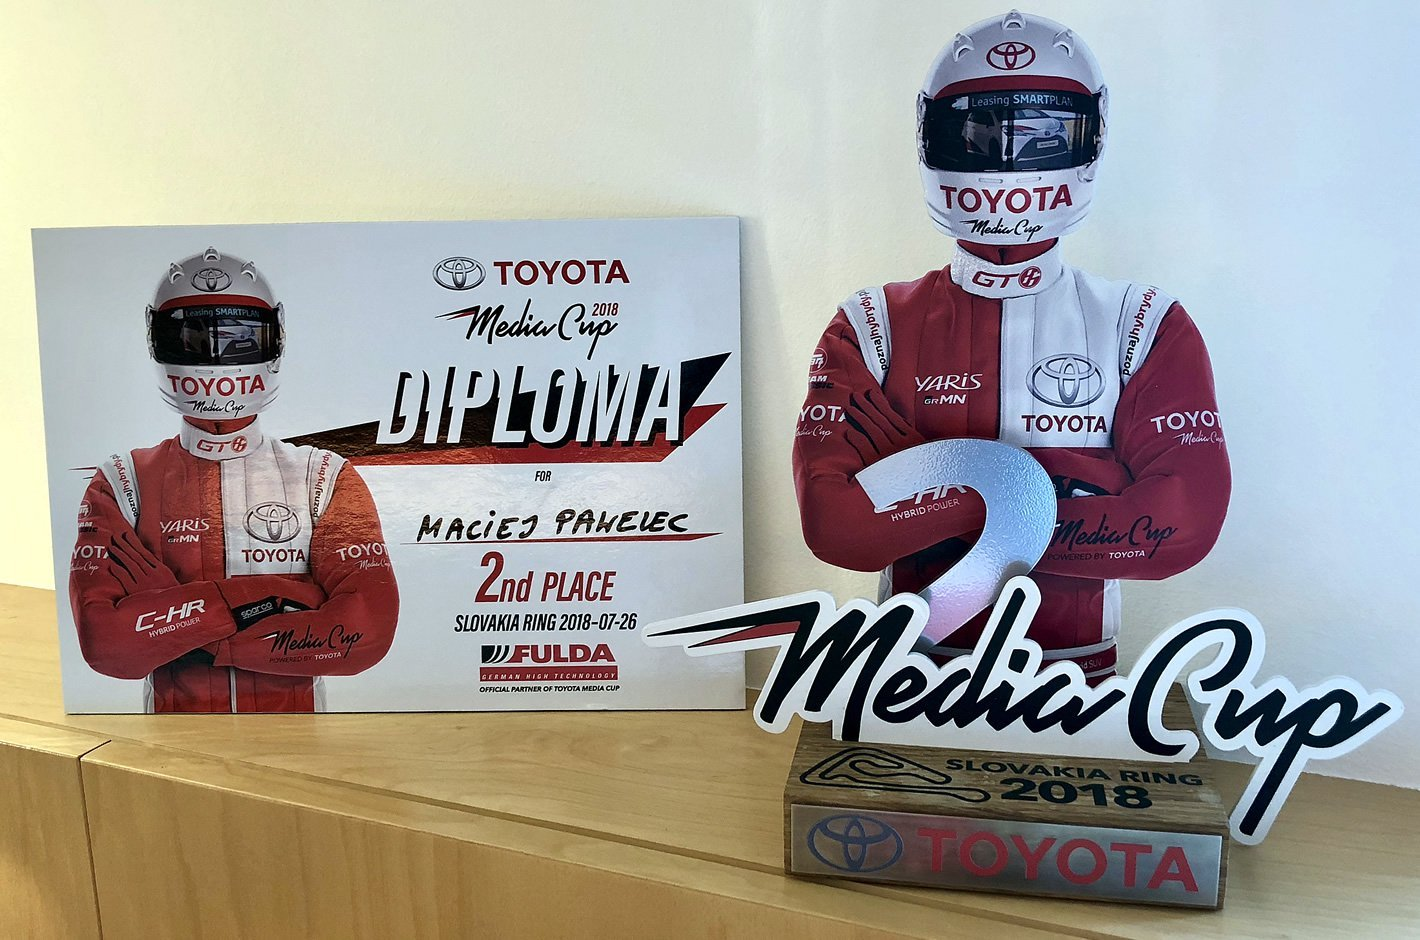 Toyota Media Cup Race Challenge - puchar i dyplom